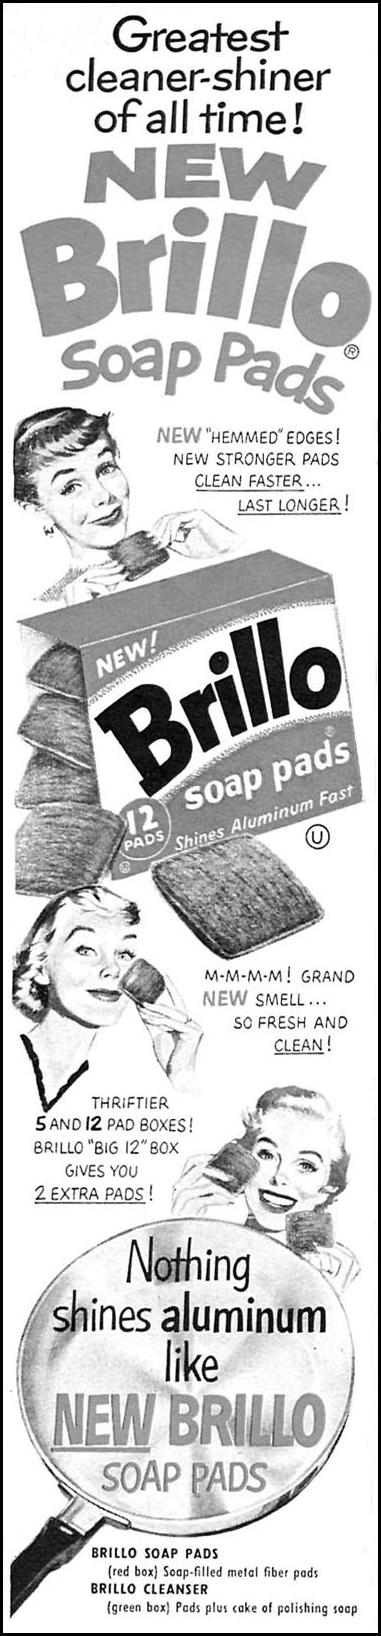 BRILLO SOAP PADS WOMAN'S DAY 04/01/1956 p. 106